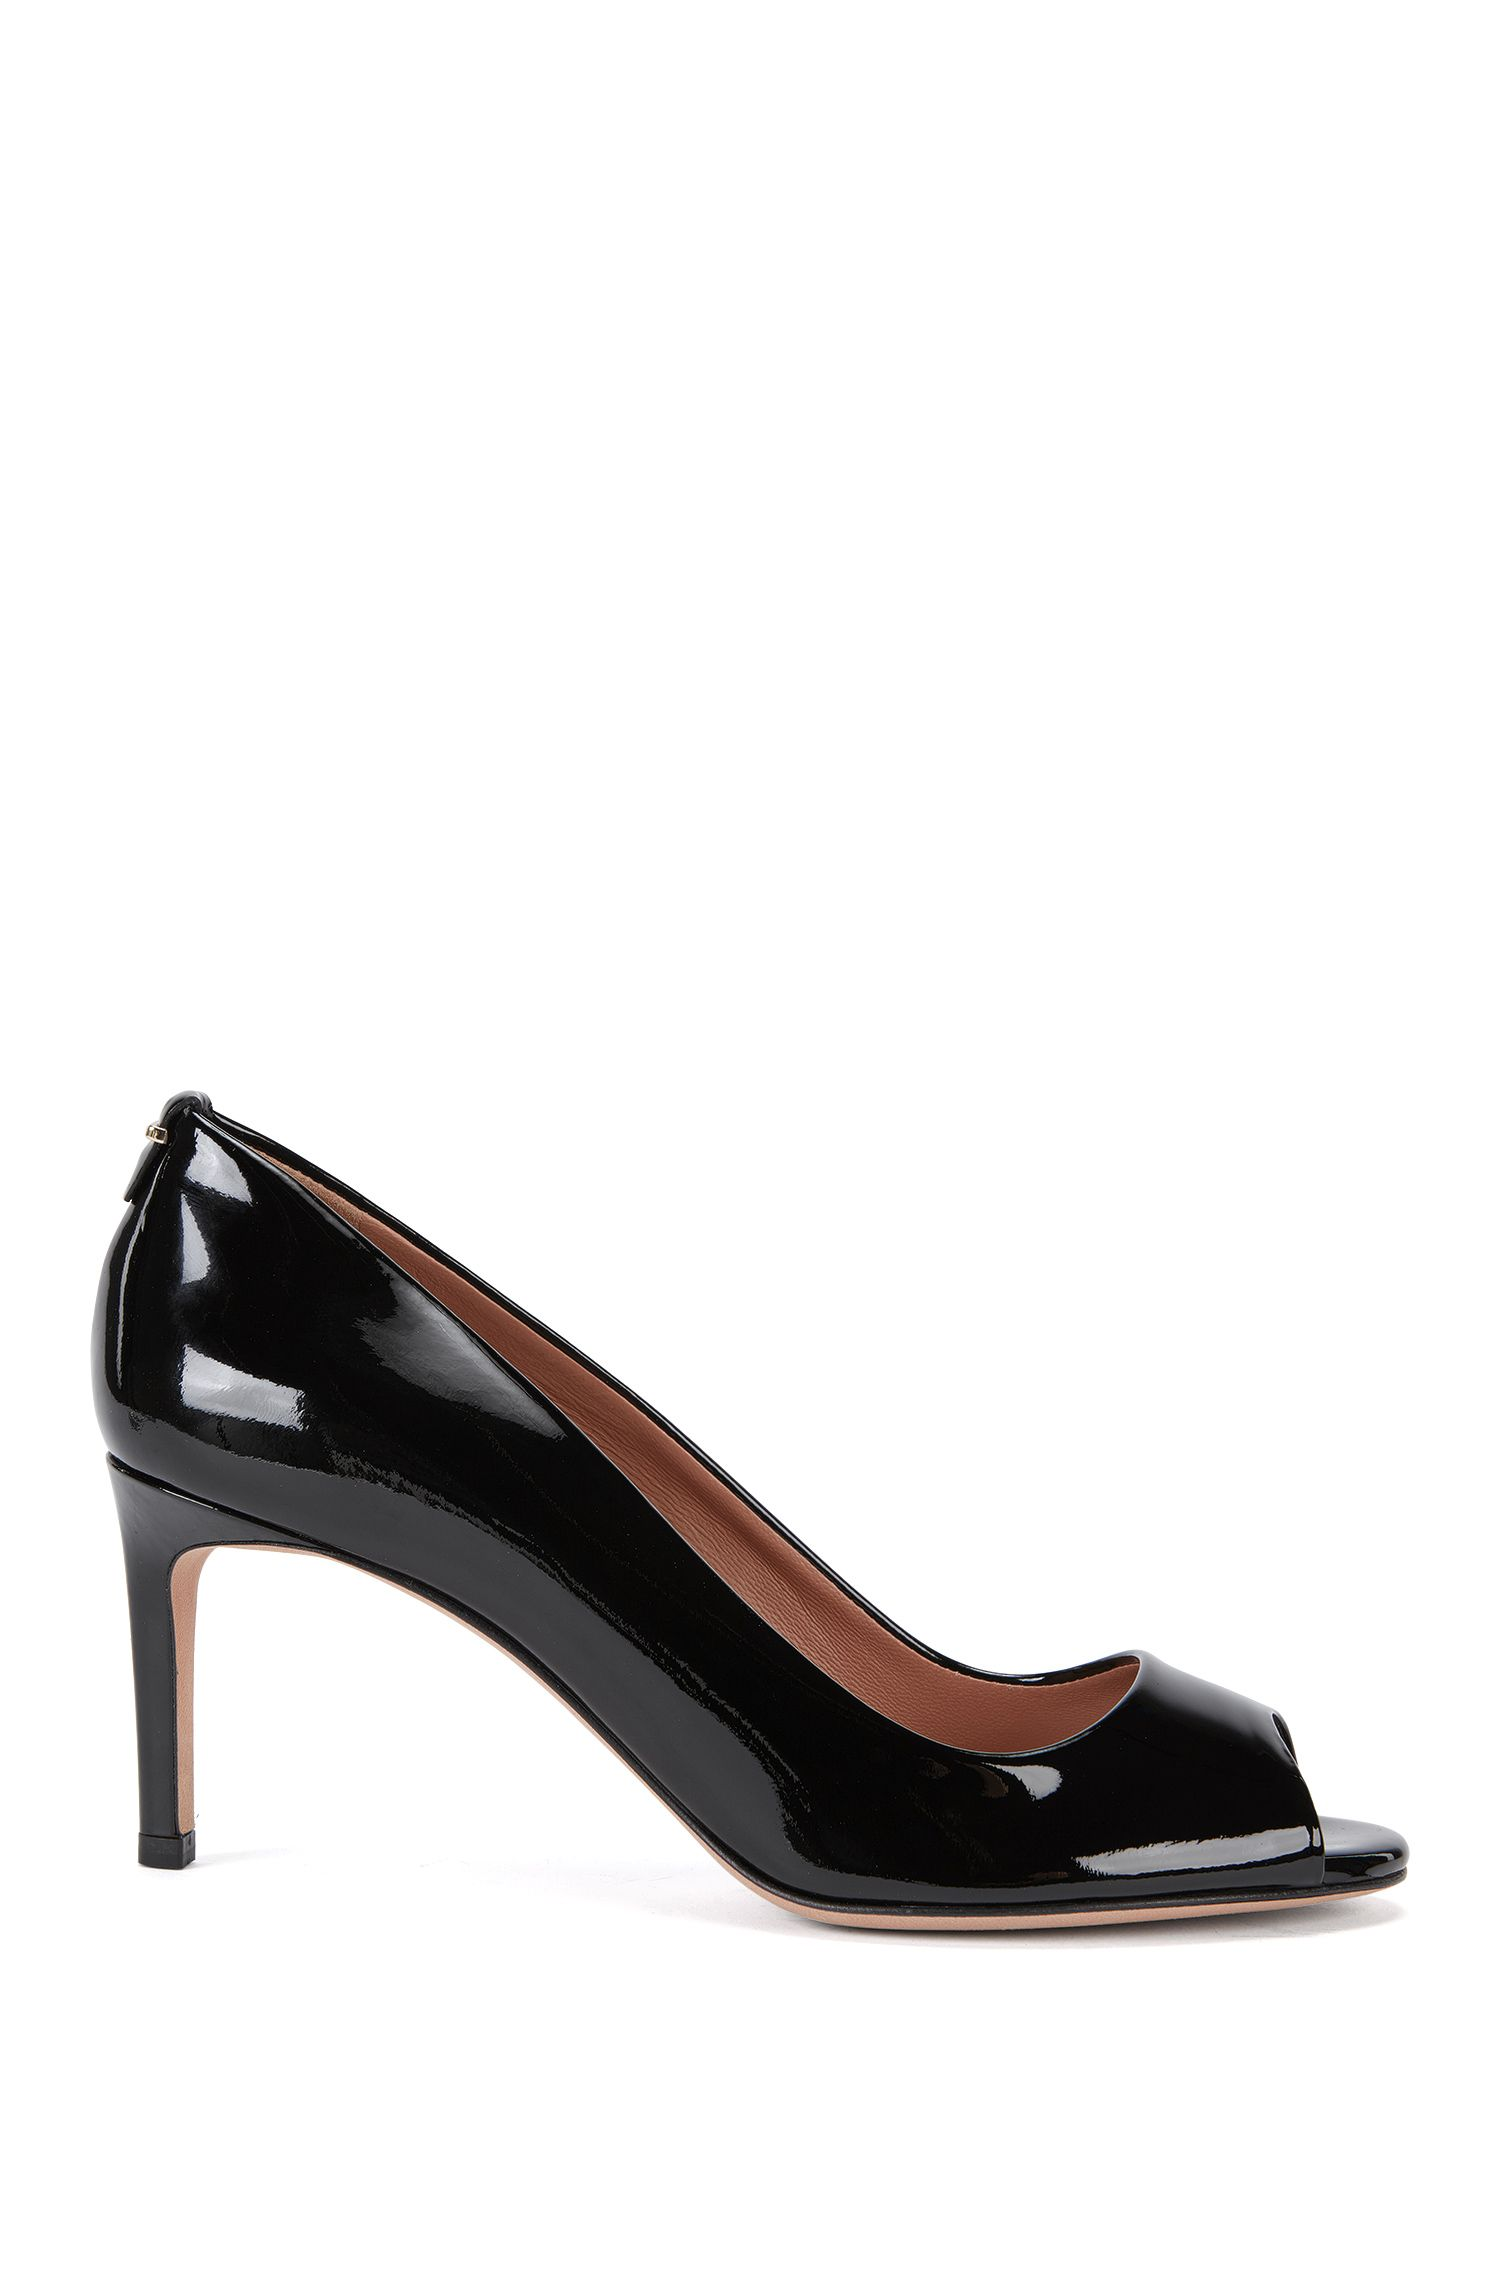 Luxury Staple open-toe pumps in Italian patent leather